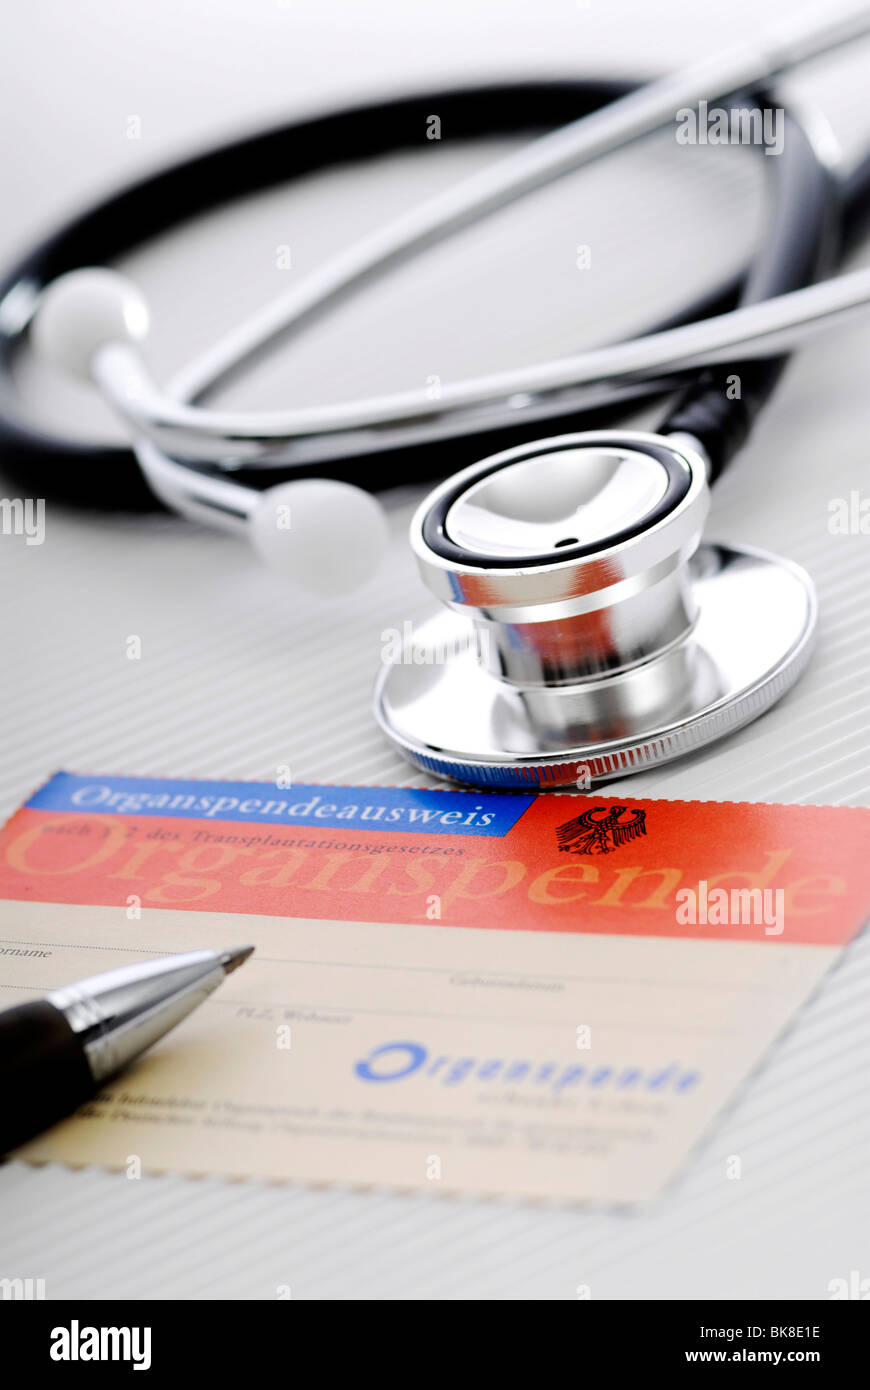 Organ donor card and stethoscope Stock Photo